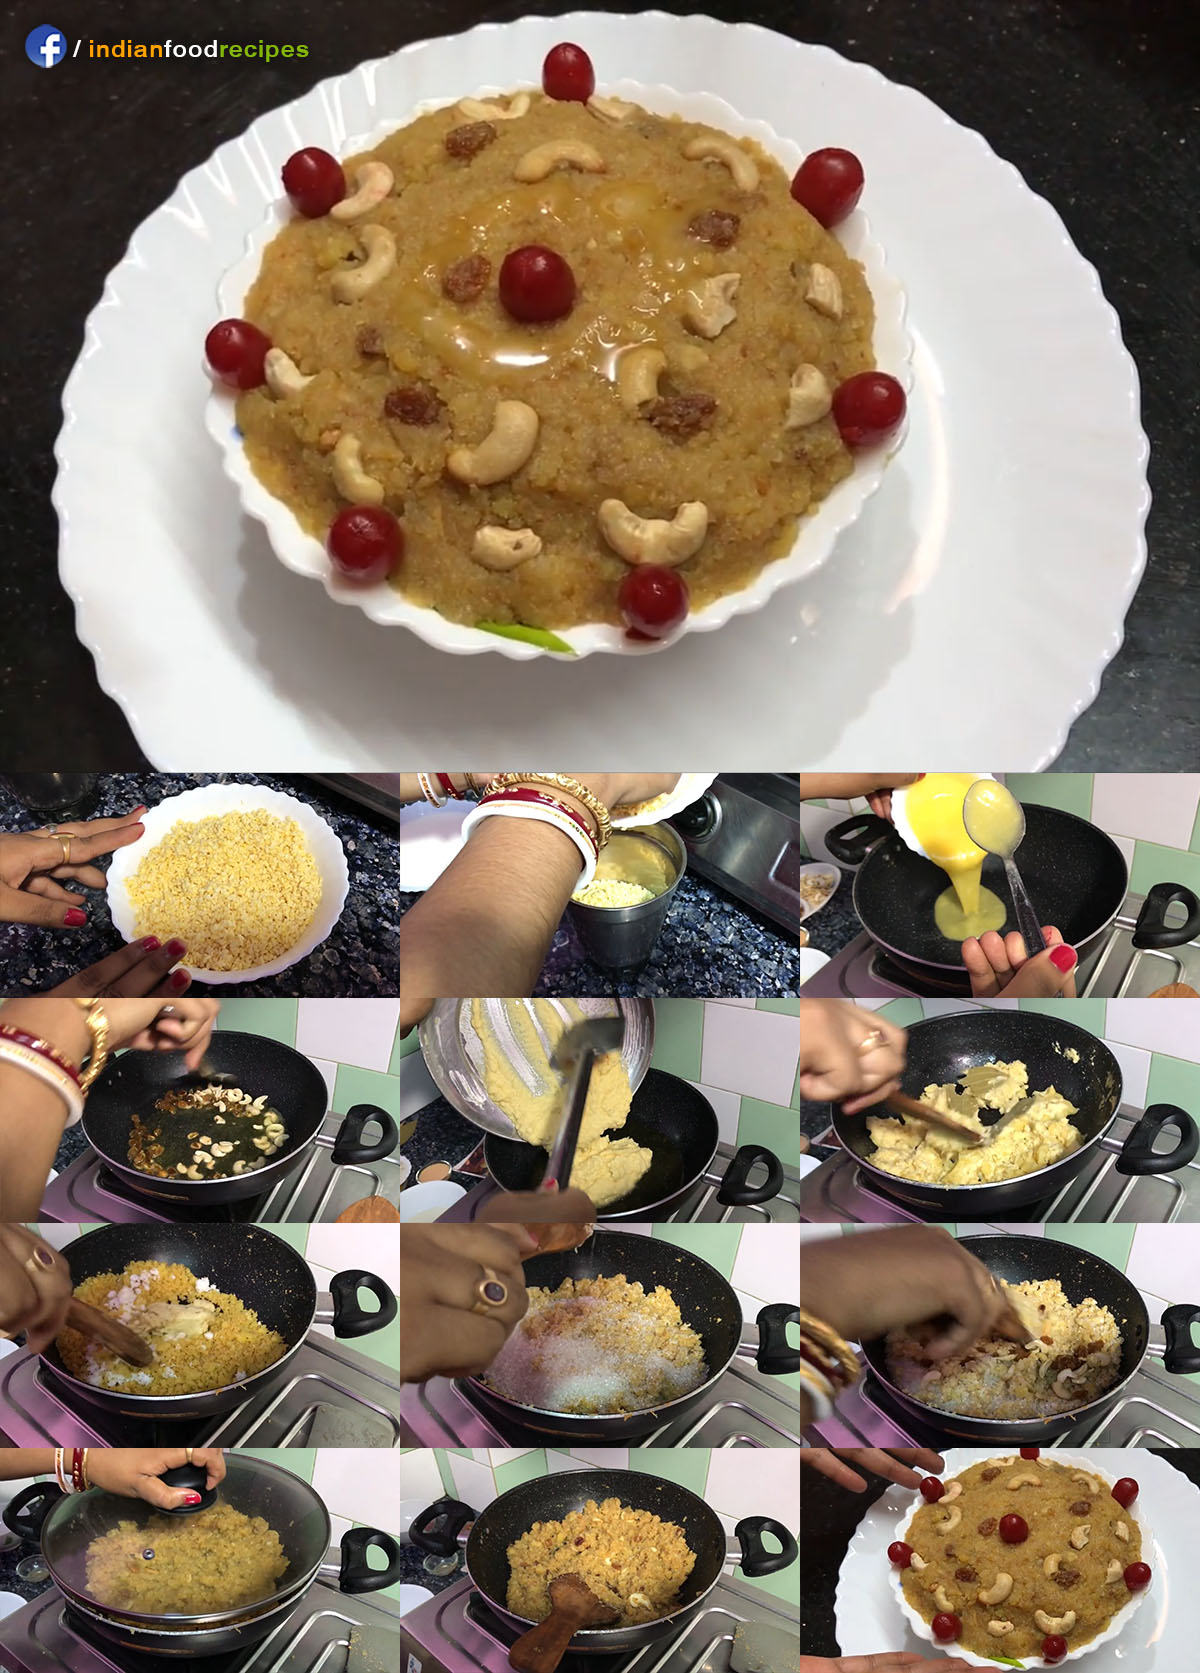 Authentic Moong Dal Halwa | Sheera recipe step by step